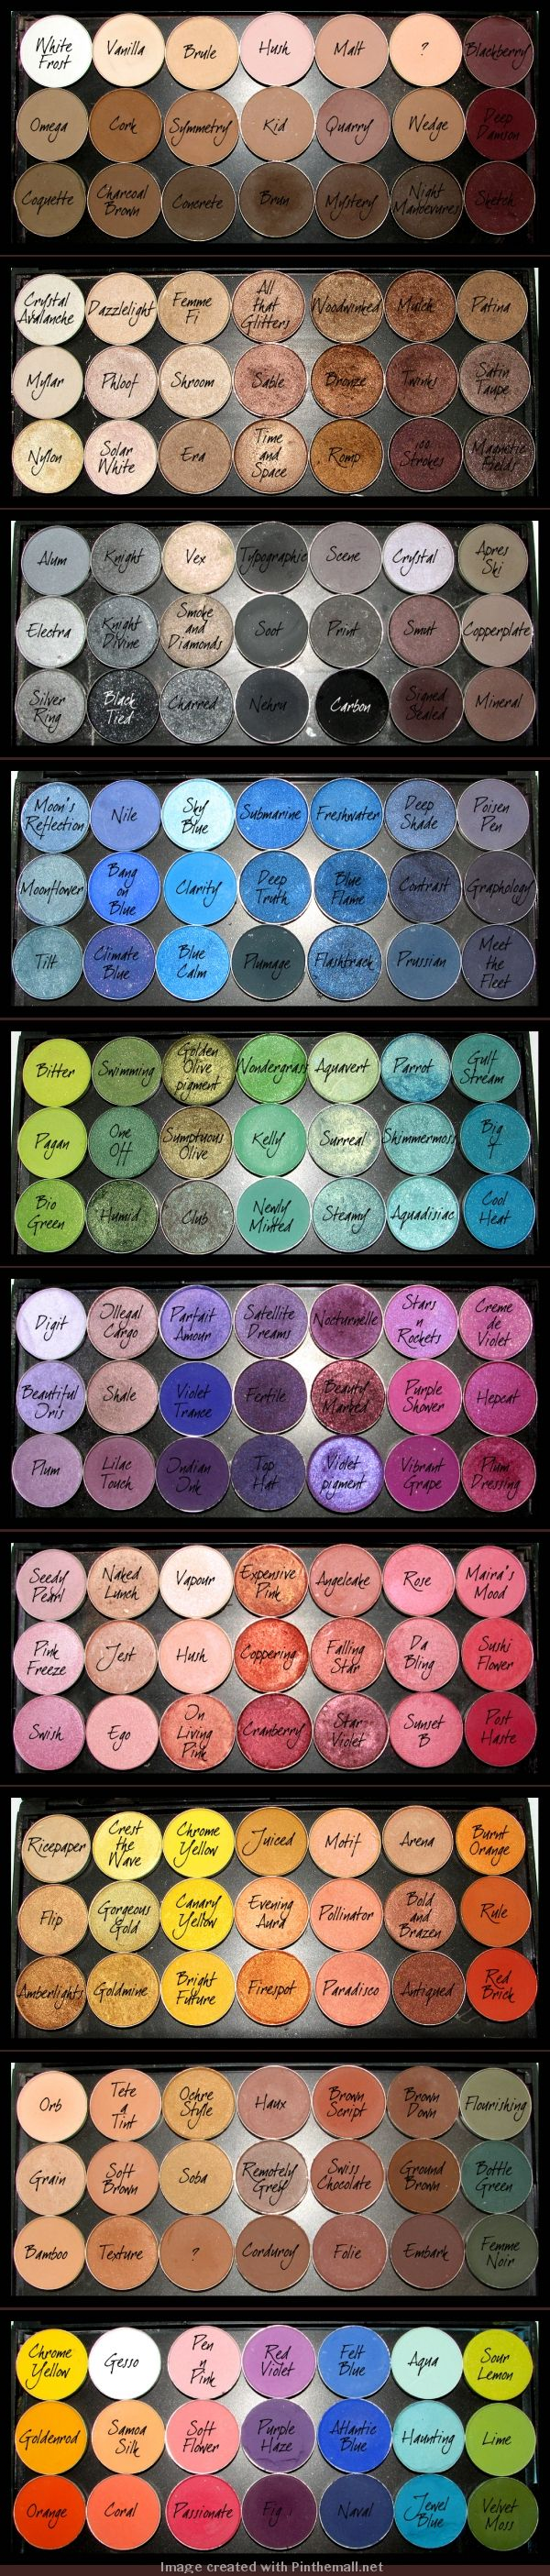 MAC shadows..... I don't really change my make up very much, but Omg I'd still want ALL of that!!